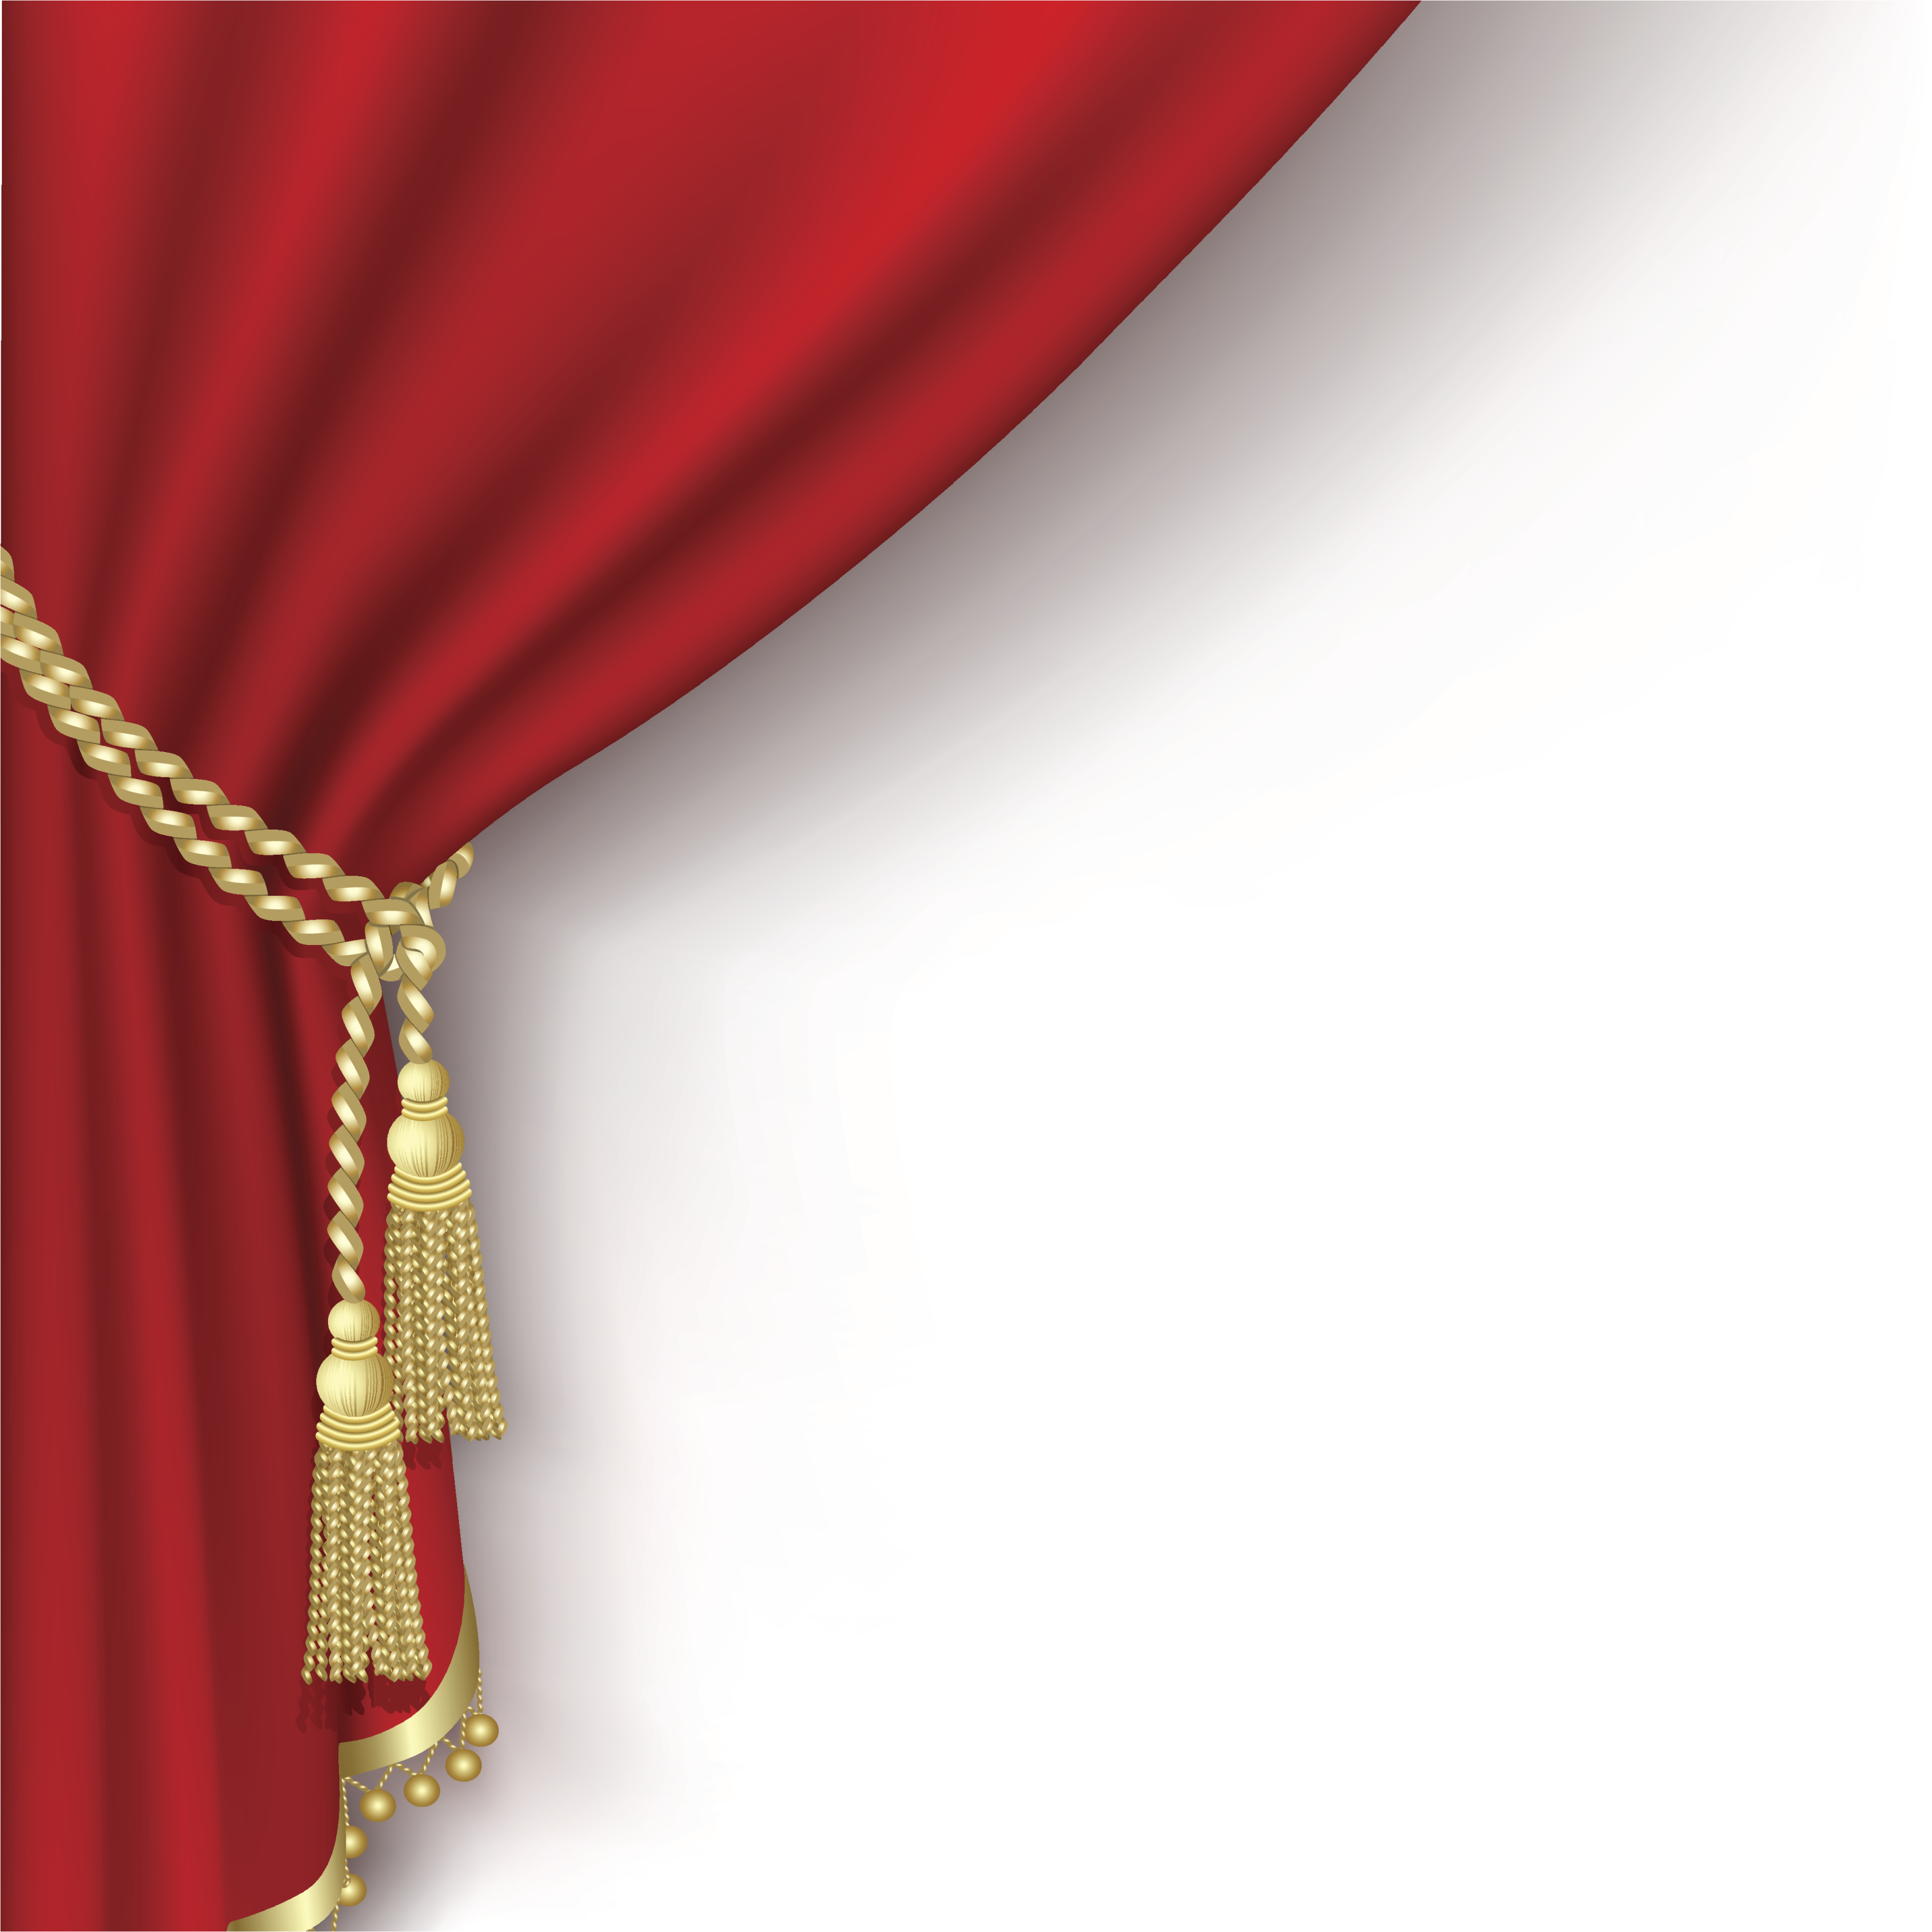 Curtain hd png transparent curtain hd png images pluspng for Tende frama